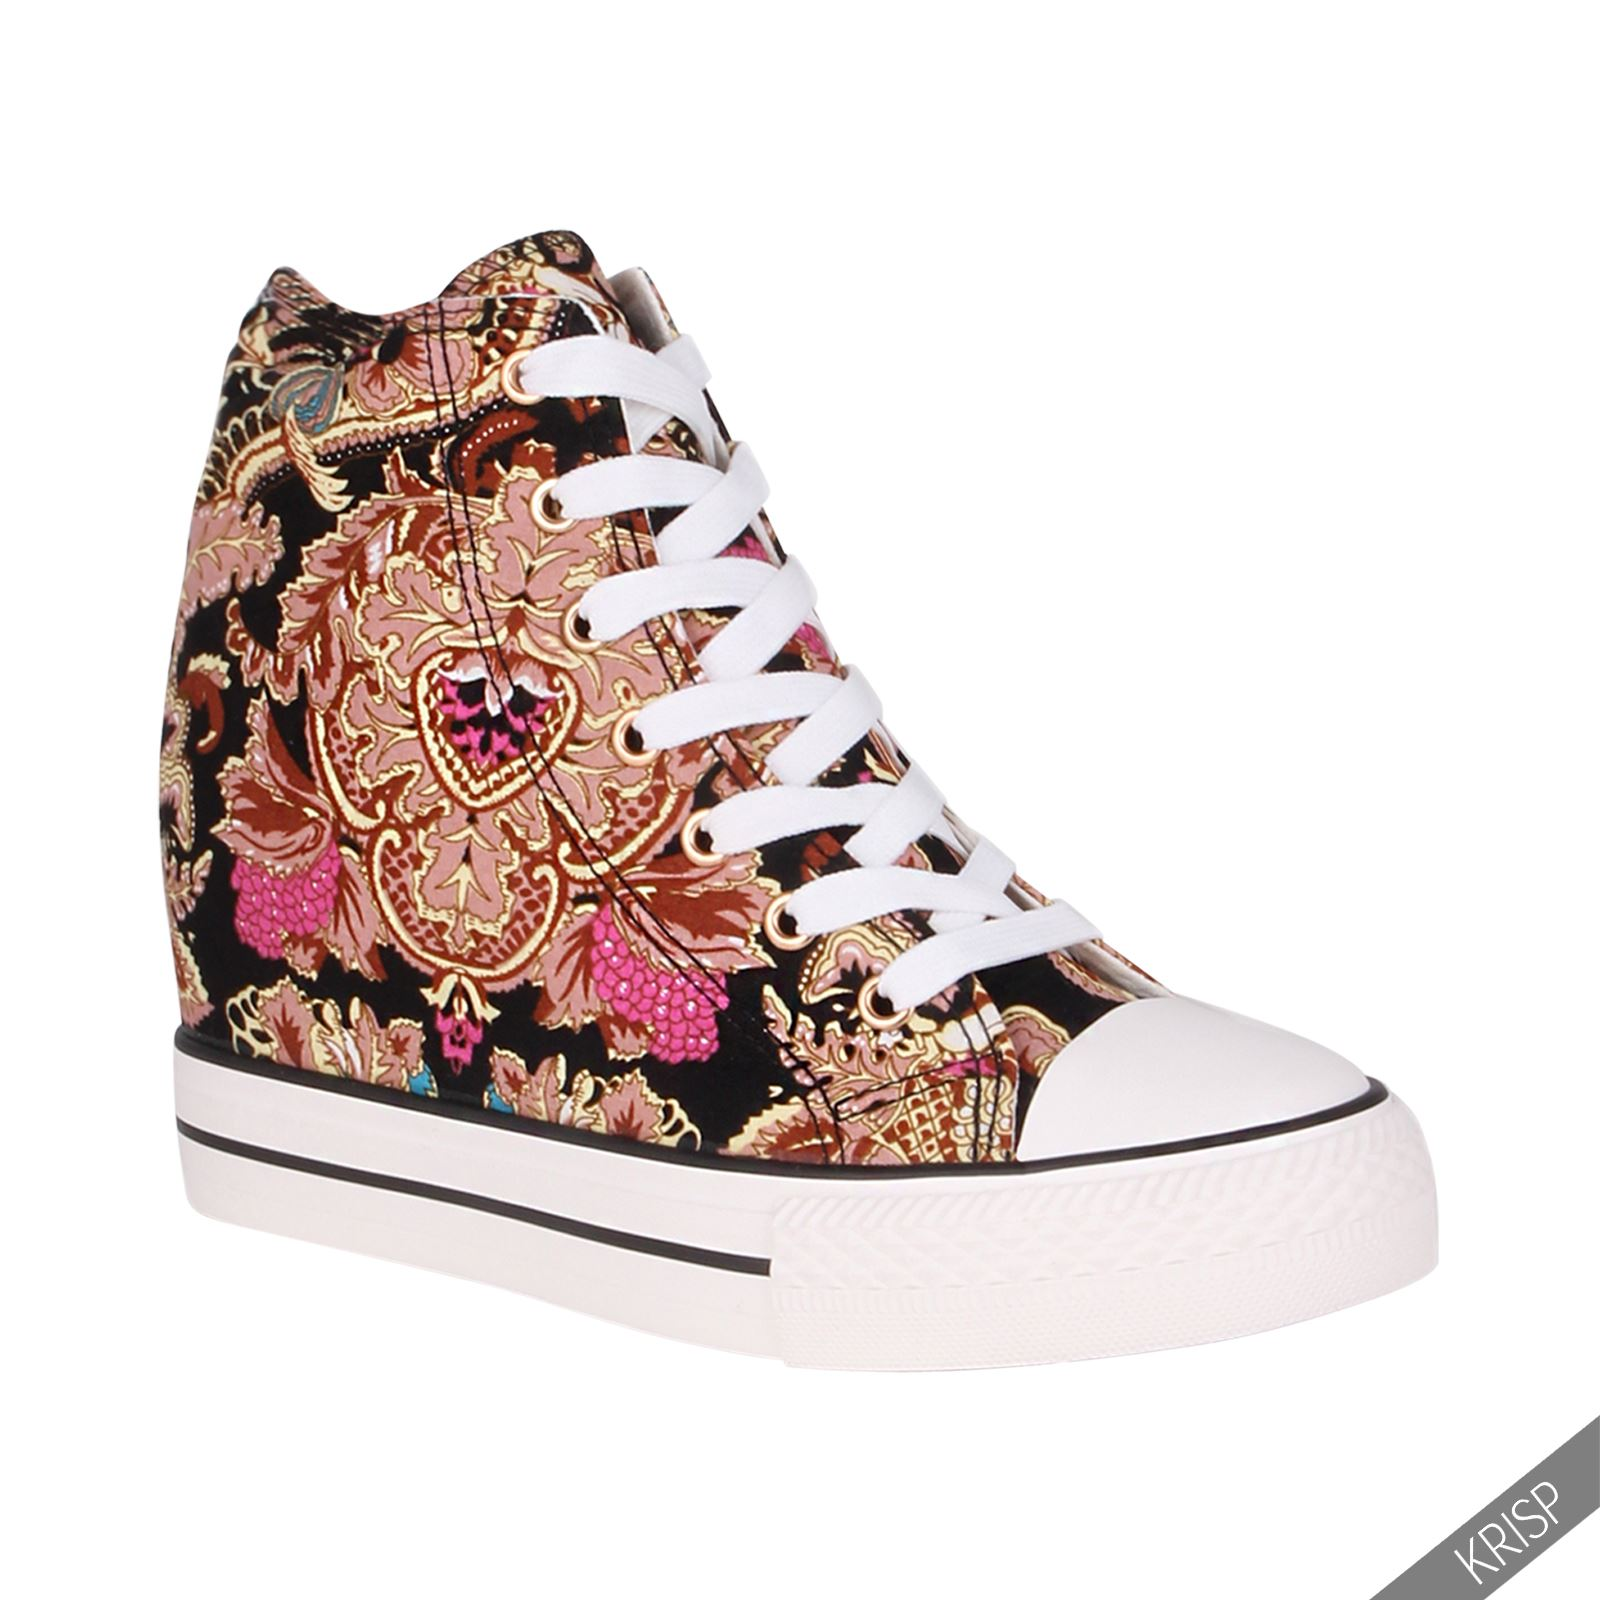 Womens High Top Sneakers With Heels